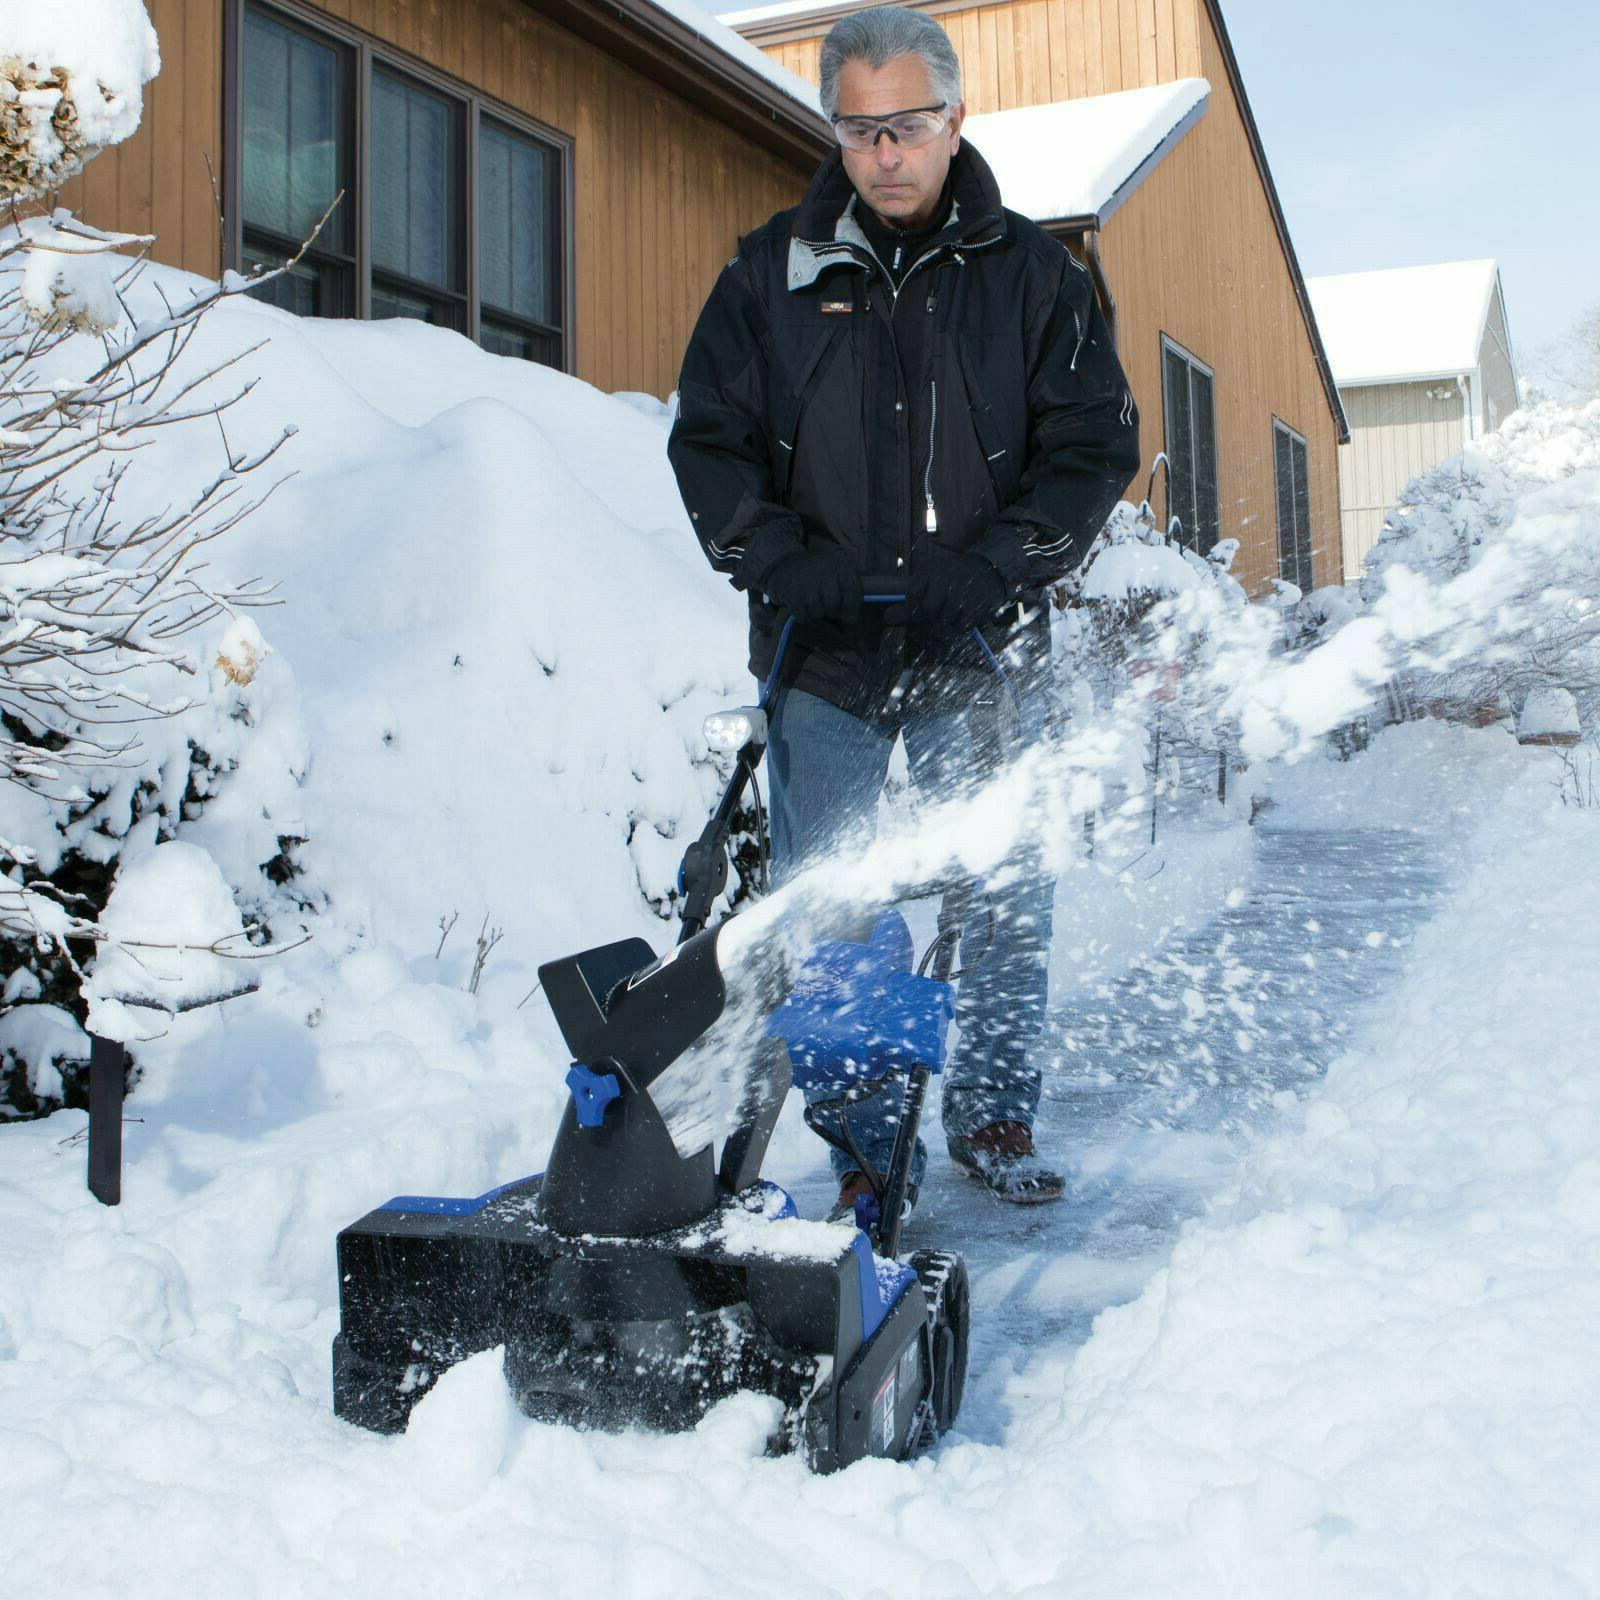 Snow Joe Snow Blower |